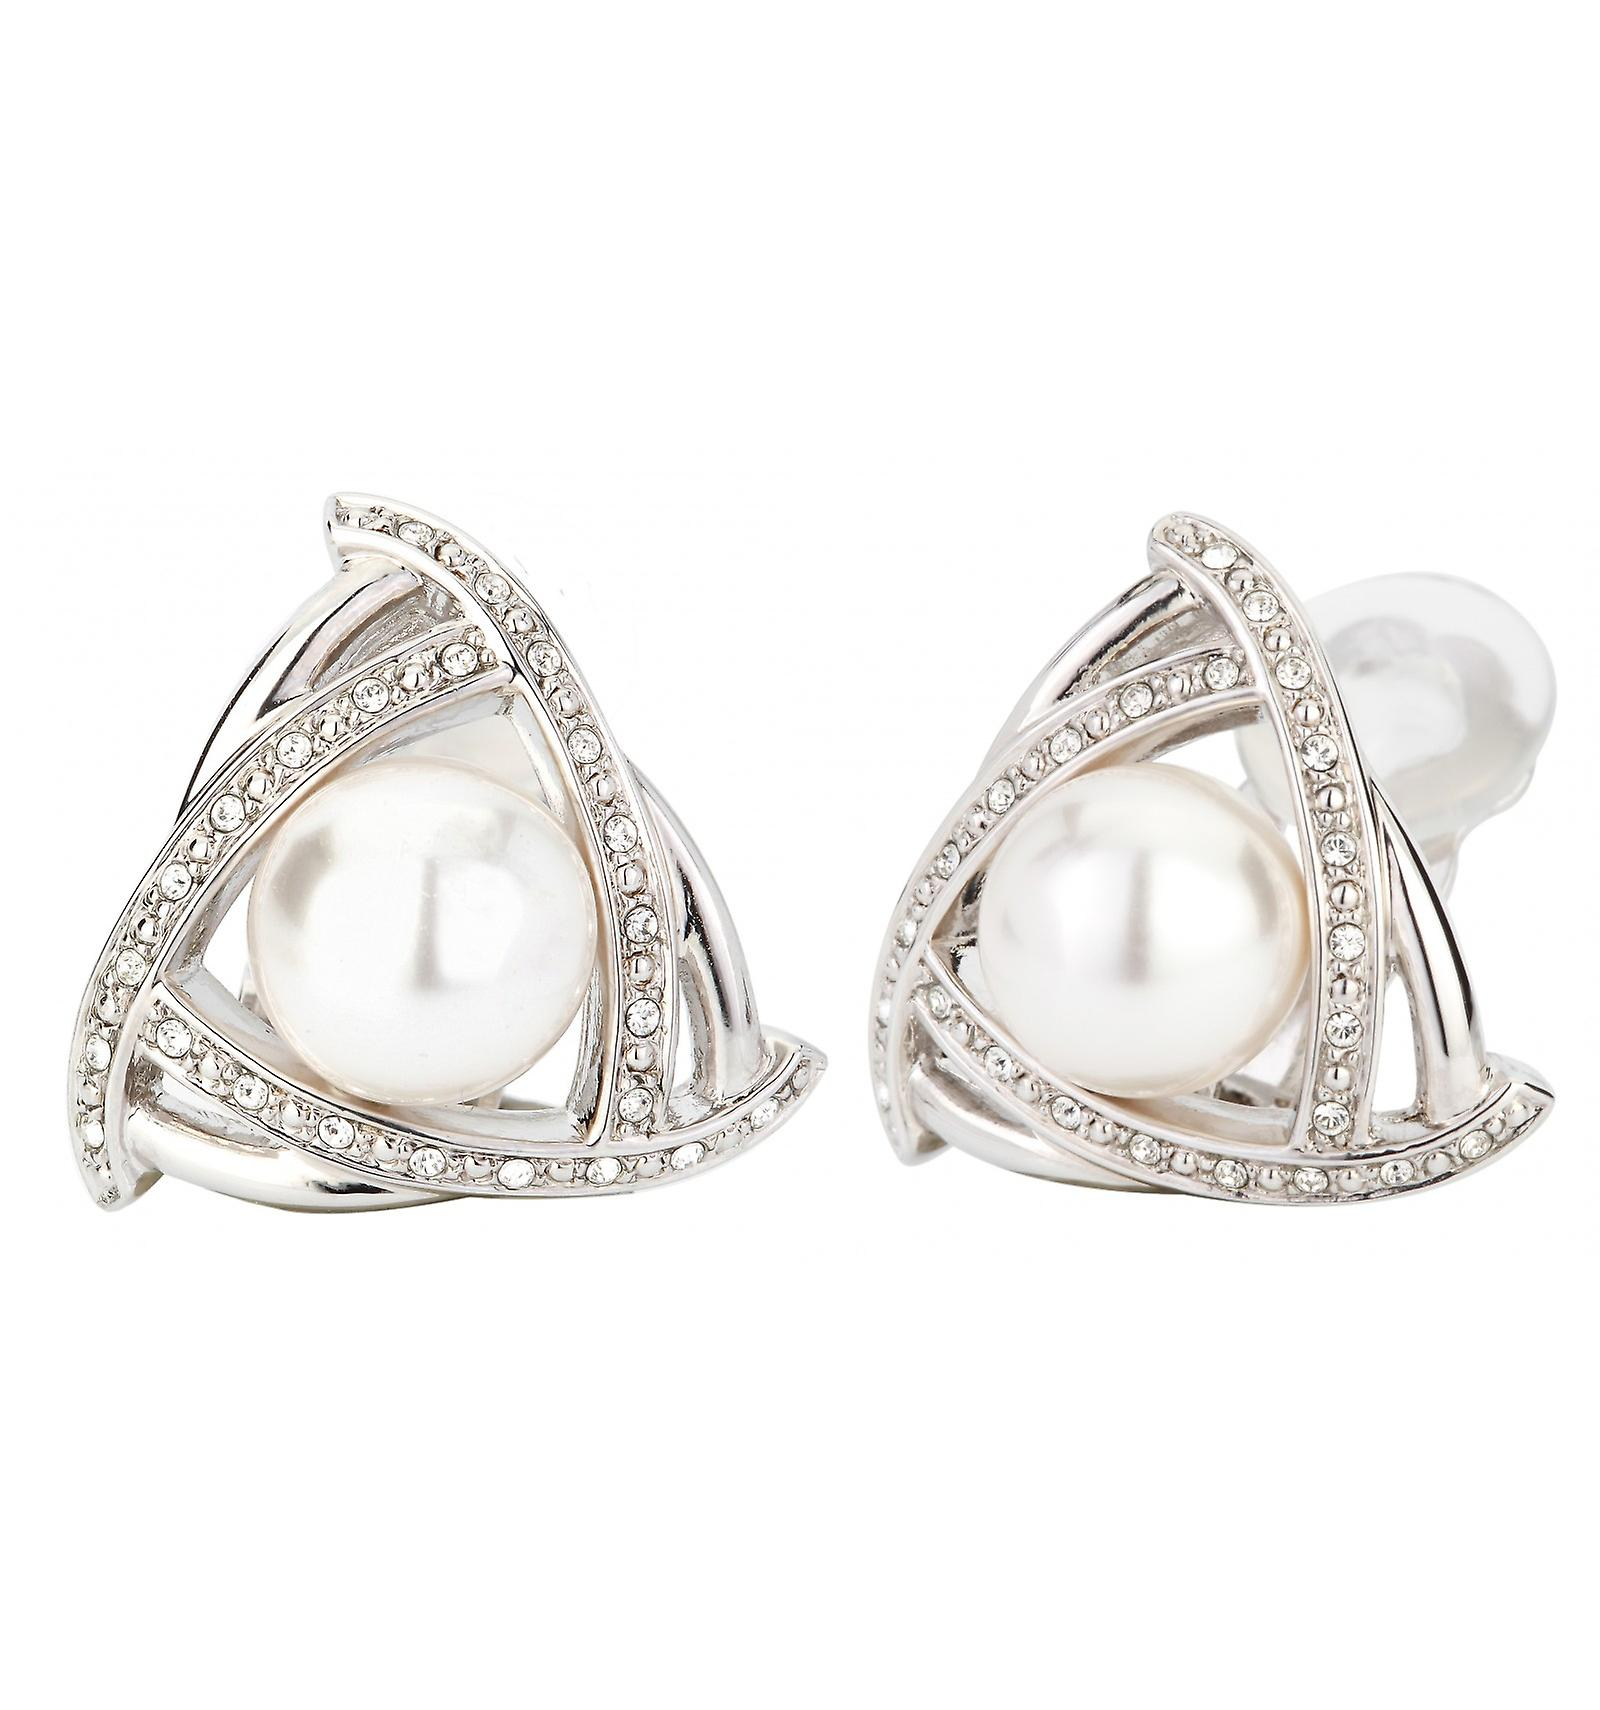 Reiziger clip Earring-10mm witte parel-rhodium plated-114175